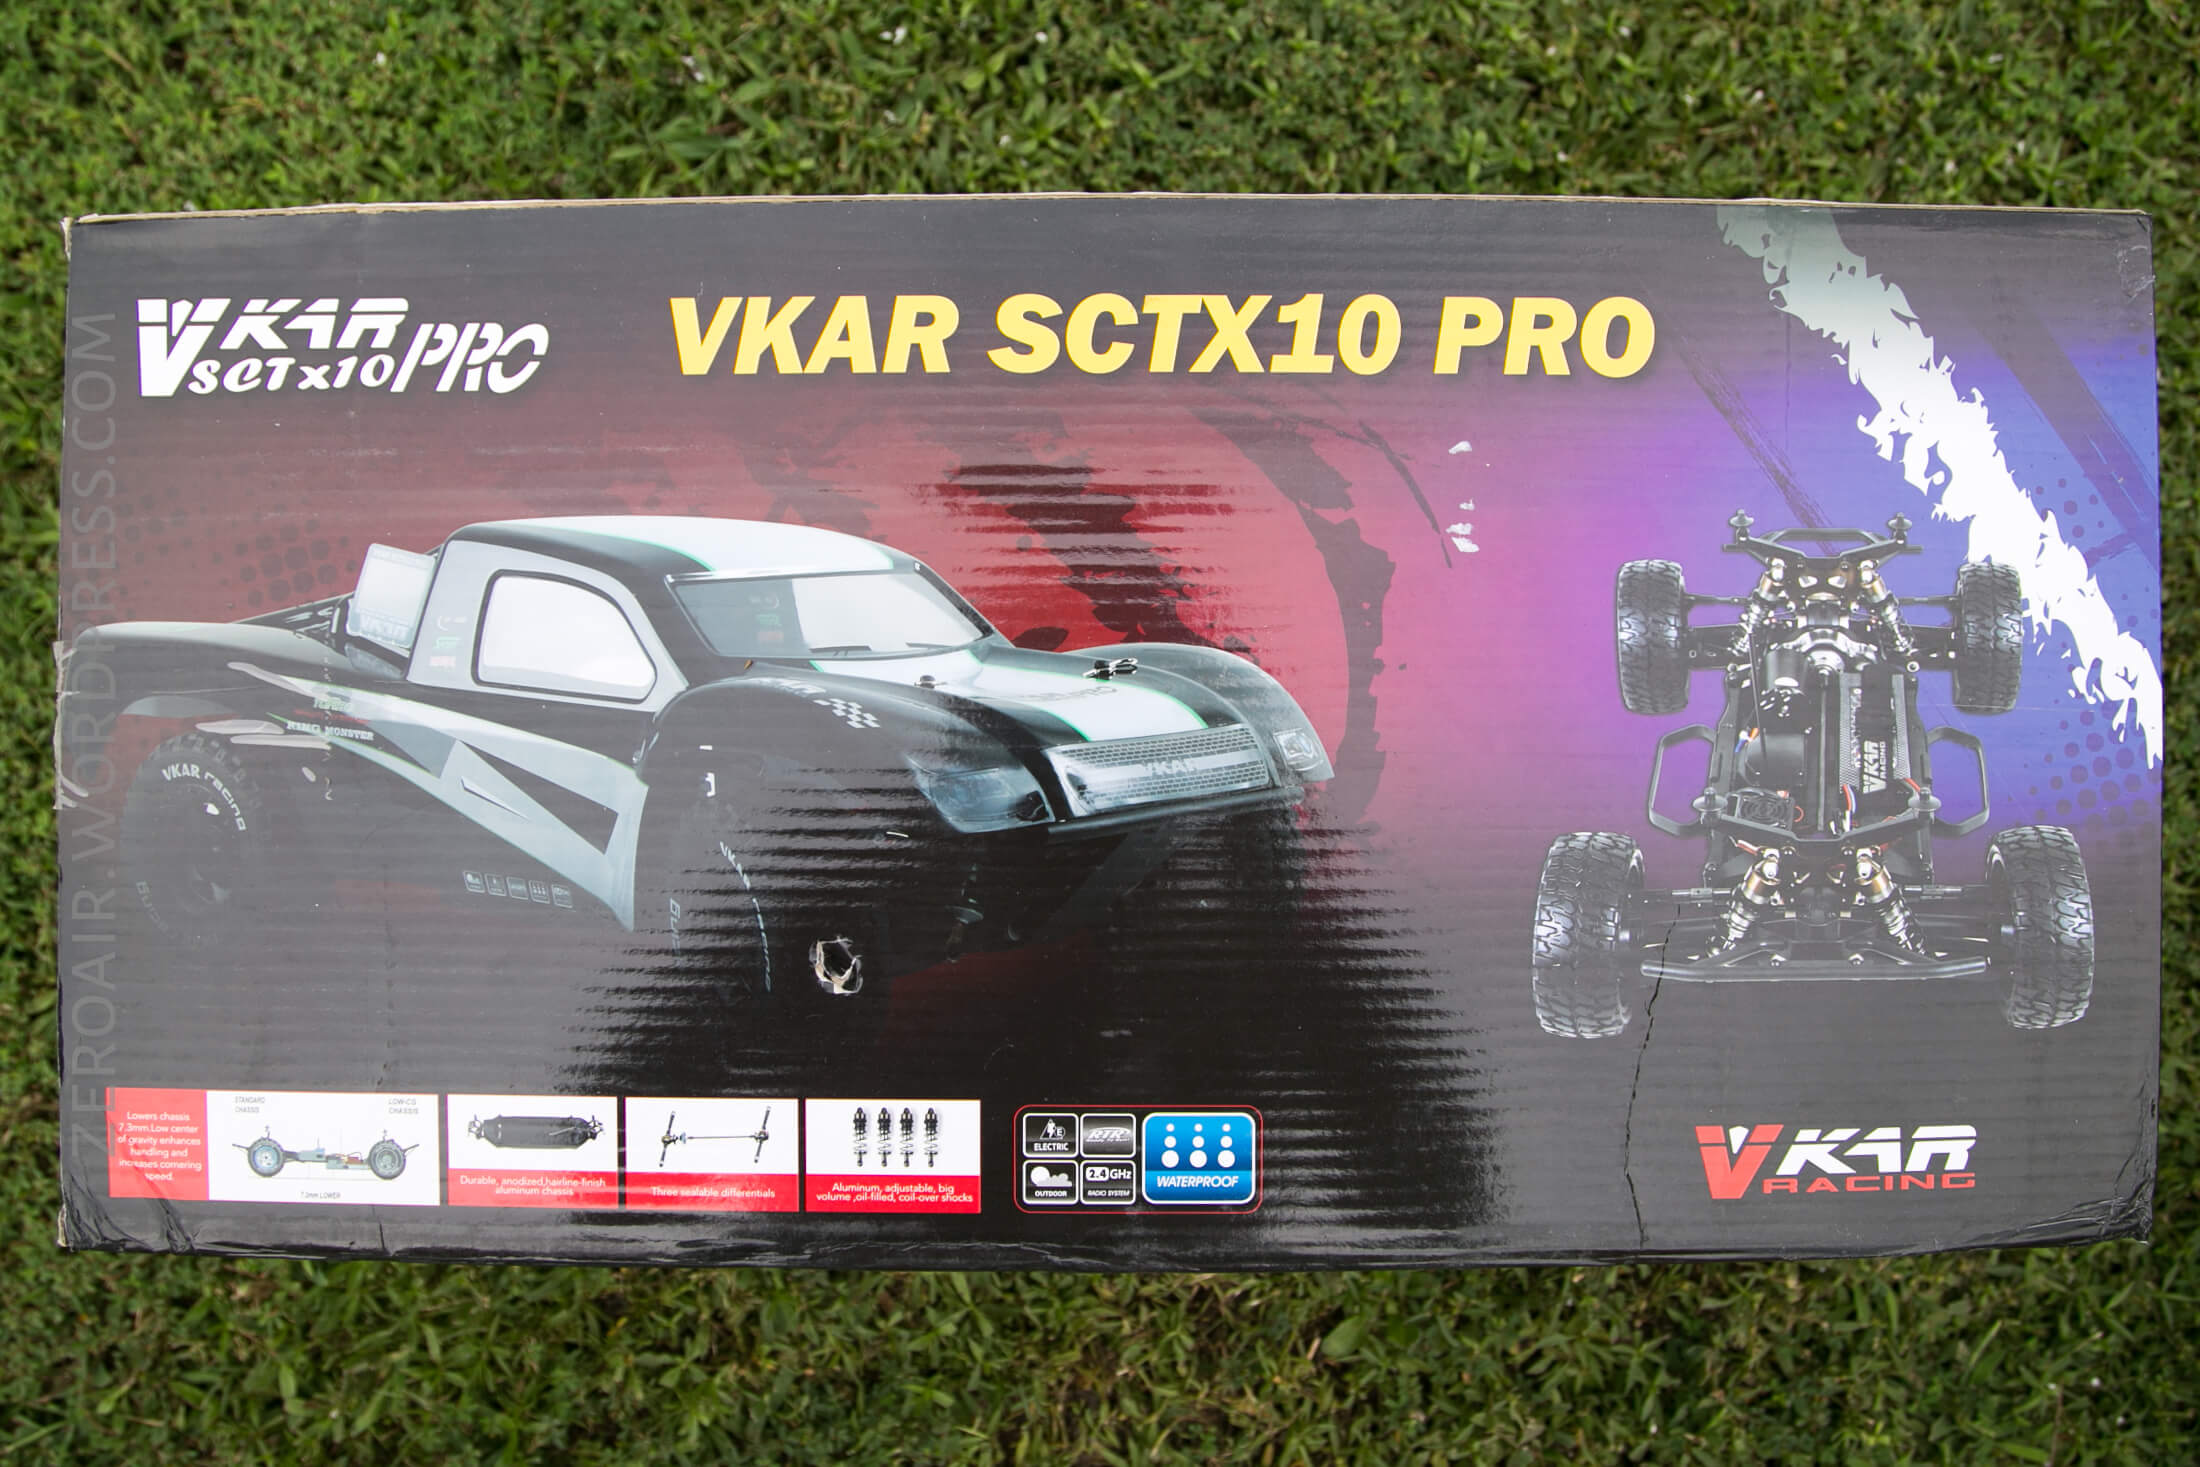 zeroair_vkar_sctx10_v2_rc_car_scale-01.jpg